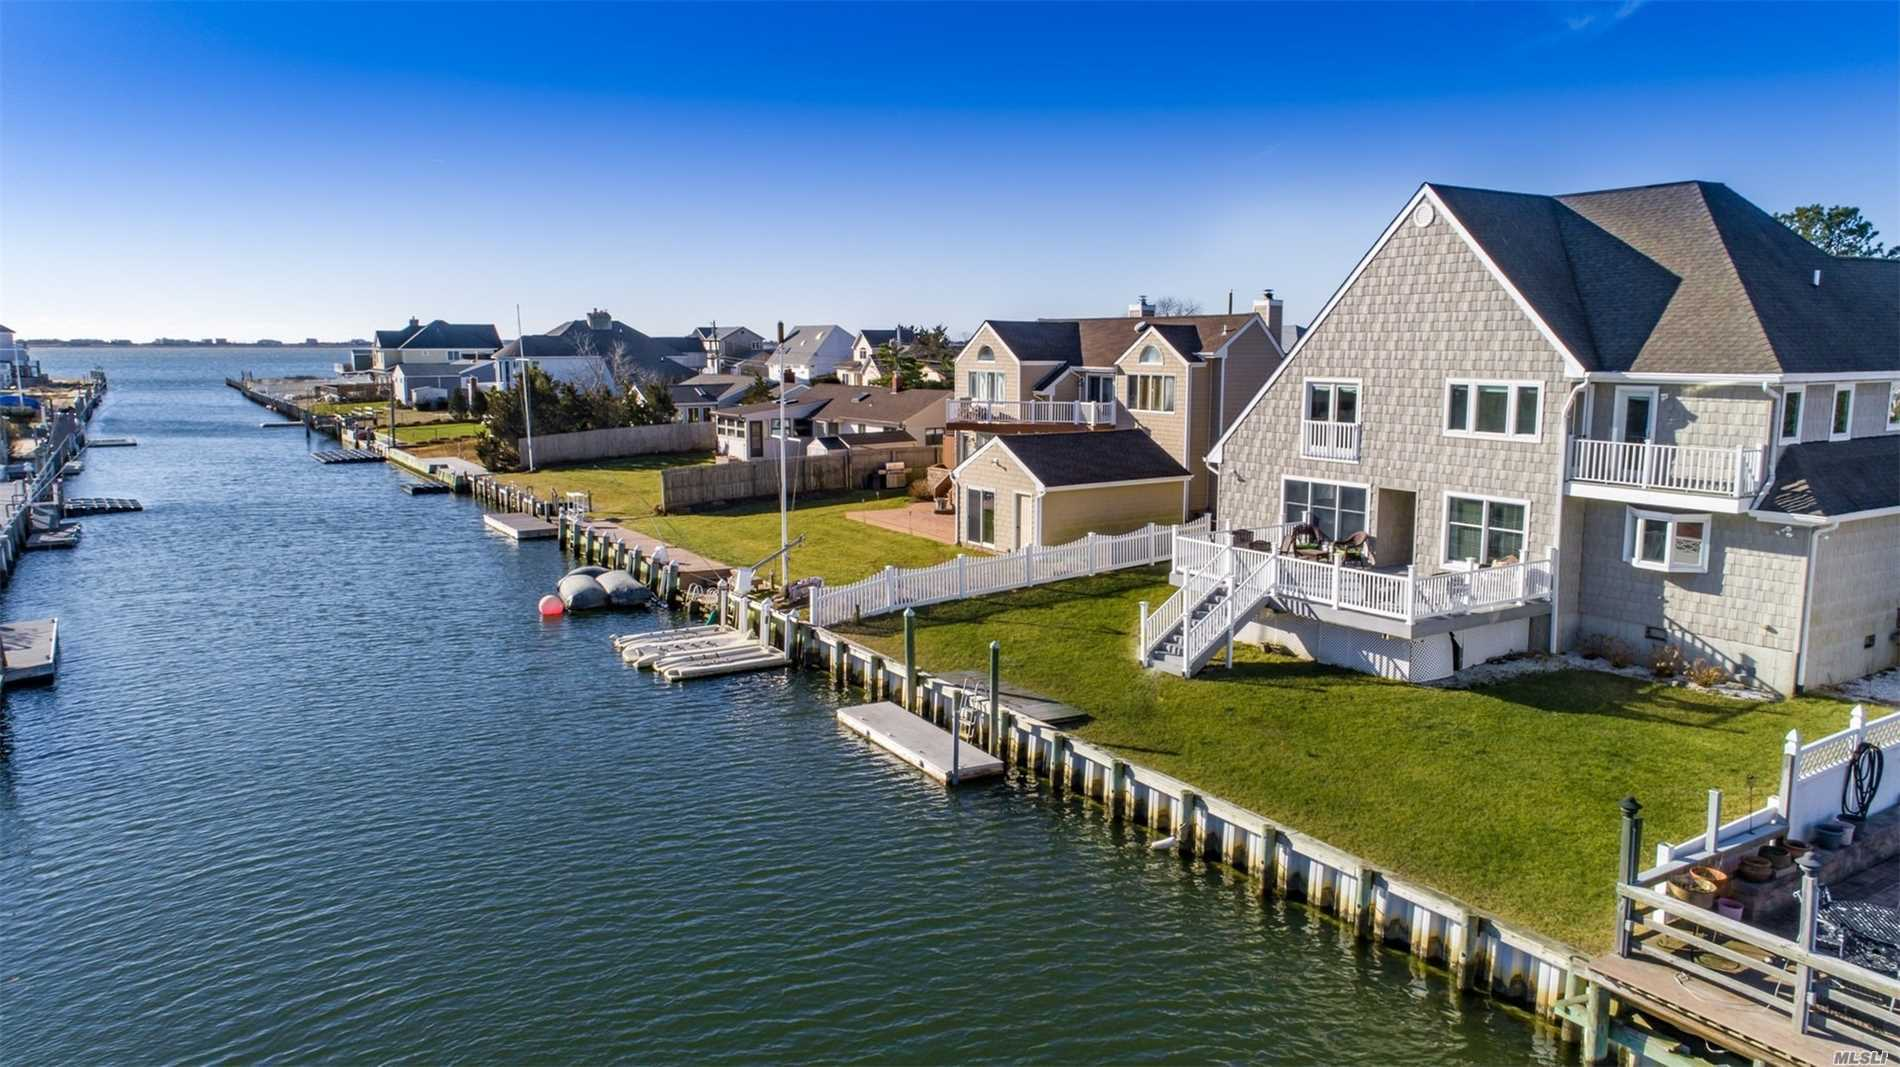 Hamptons Waterfront Retreat With Gorgeous Shinnecock Bay Views And 75' Of Navy Bulkhead.This Stunning 3500 Sq Ft Shingled And Stone Residence Offers A Double Height Entry, Open Floor Plan, Chefs Kitchen And Expansive Deck For Outdoor Enjoyment. Huge Family Room Which Can Easily Convert Into A 1st Story Bedroom. Upstairs You'll Find Master And Junior Suites, 2 Additional Bedrooms, 3 Baths And Waterside Balcony. Travel By Land Or Sea To This Stunner, But Hurry, Summer Is Just Around The Corner!